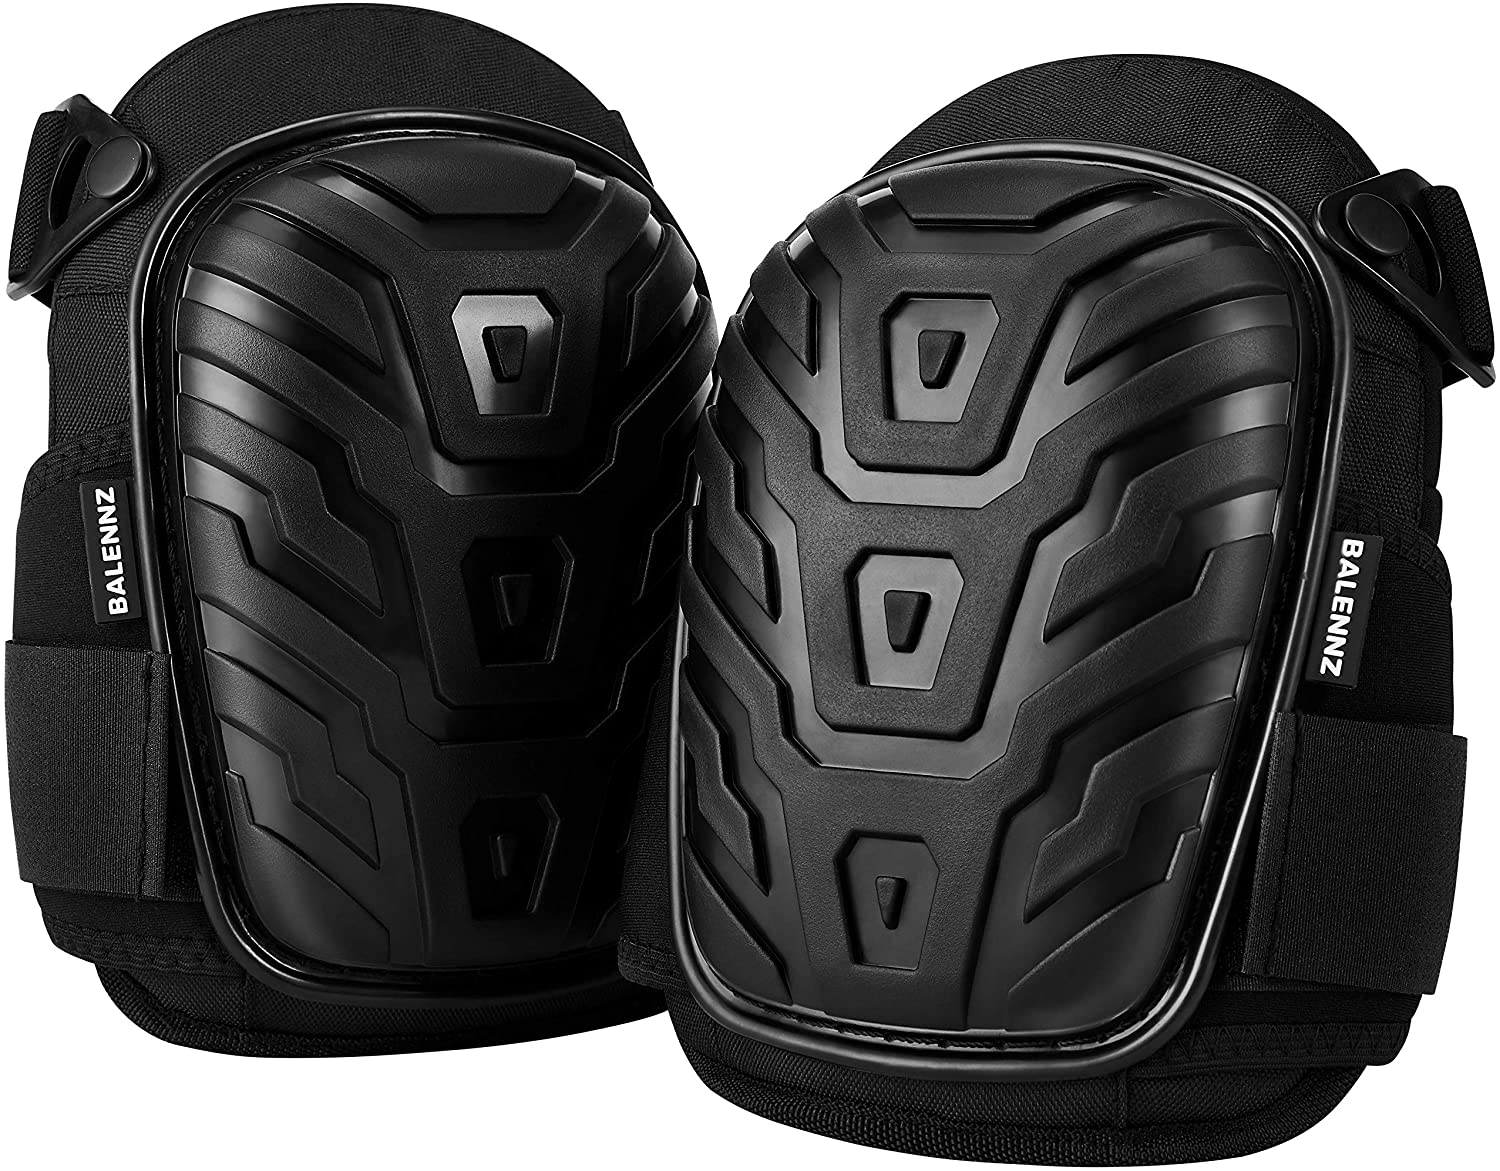 Professional Knee Pads for Work - Heavy Duty Foam Padding Gel Construction Knee Pads with Strong Double Straps – Comfortable Knee Protection for Indoor and Outdoor Use